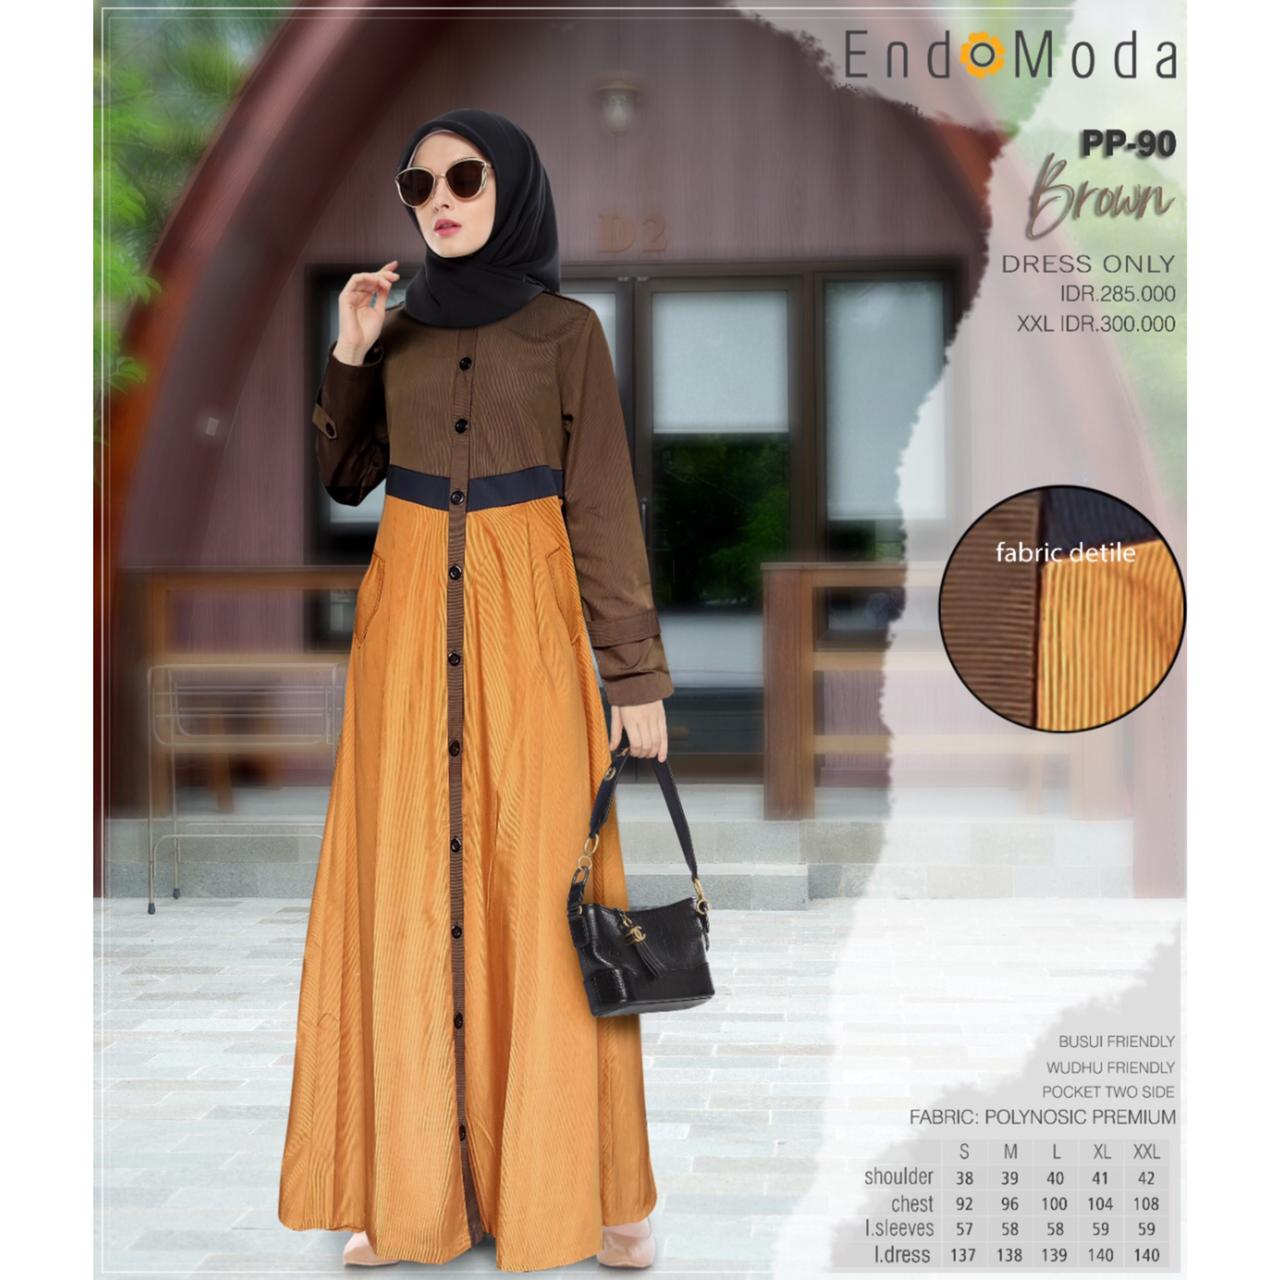 Gamis Endomoda PP 90 Brown